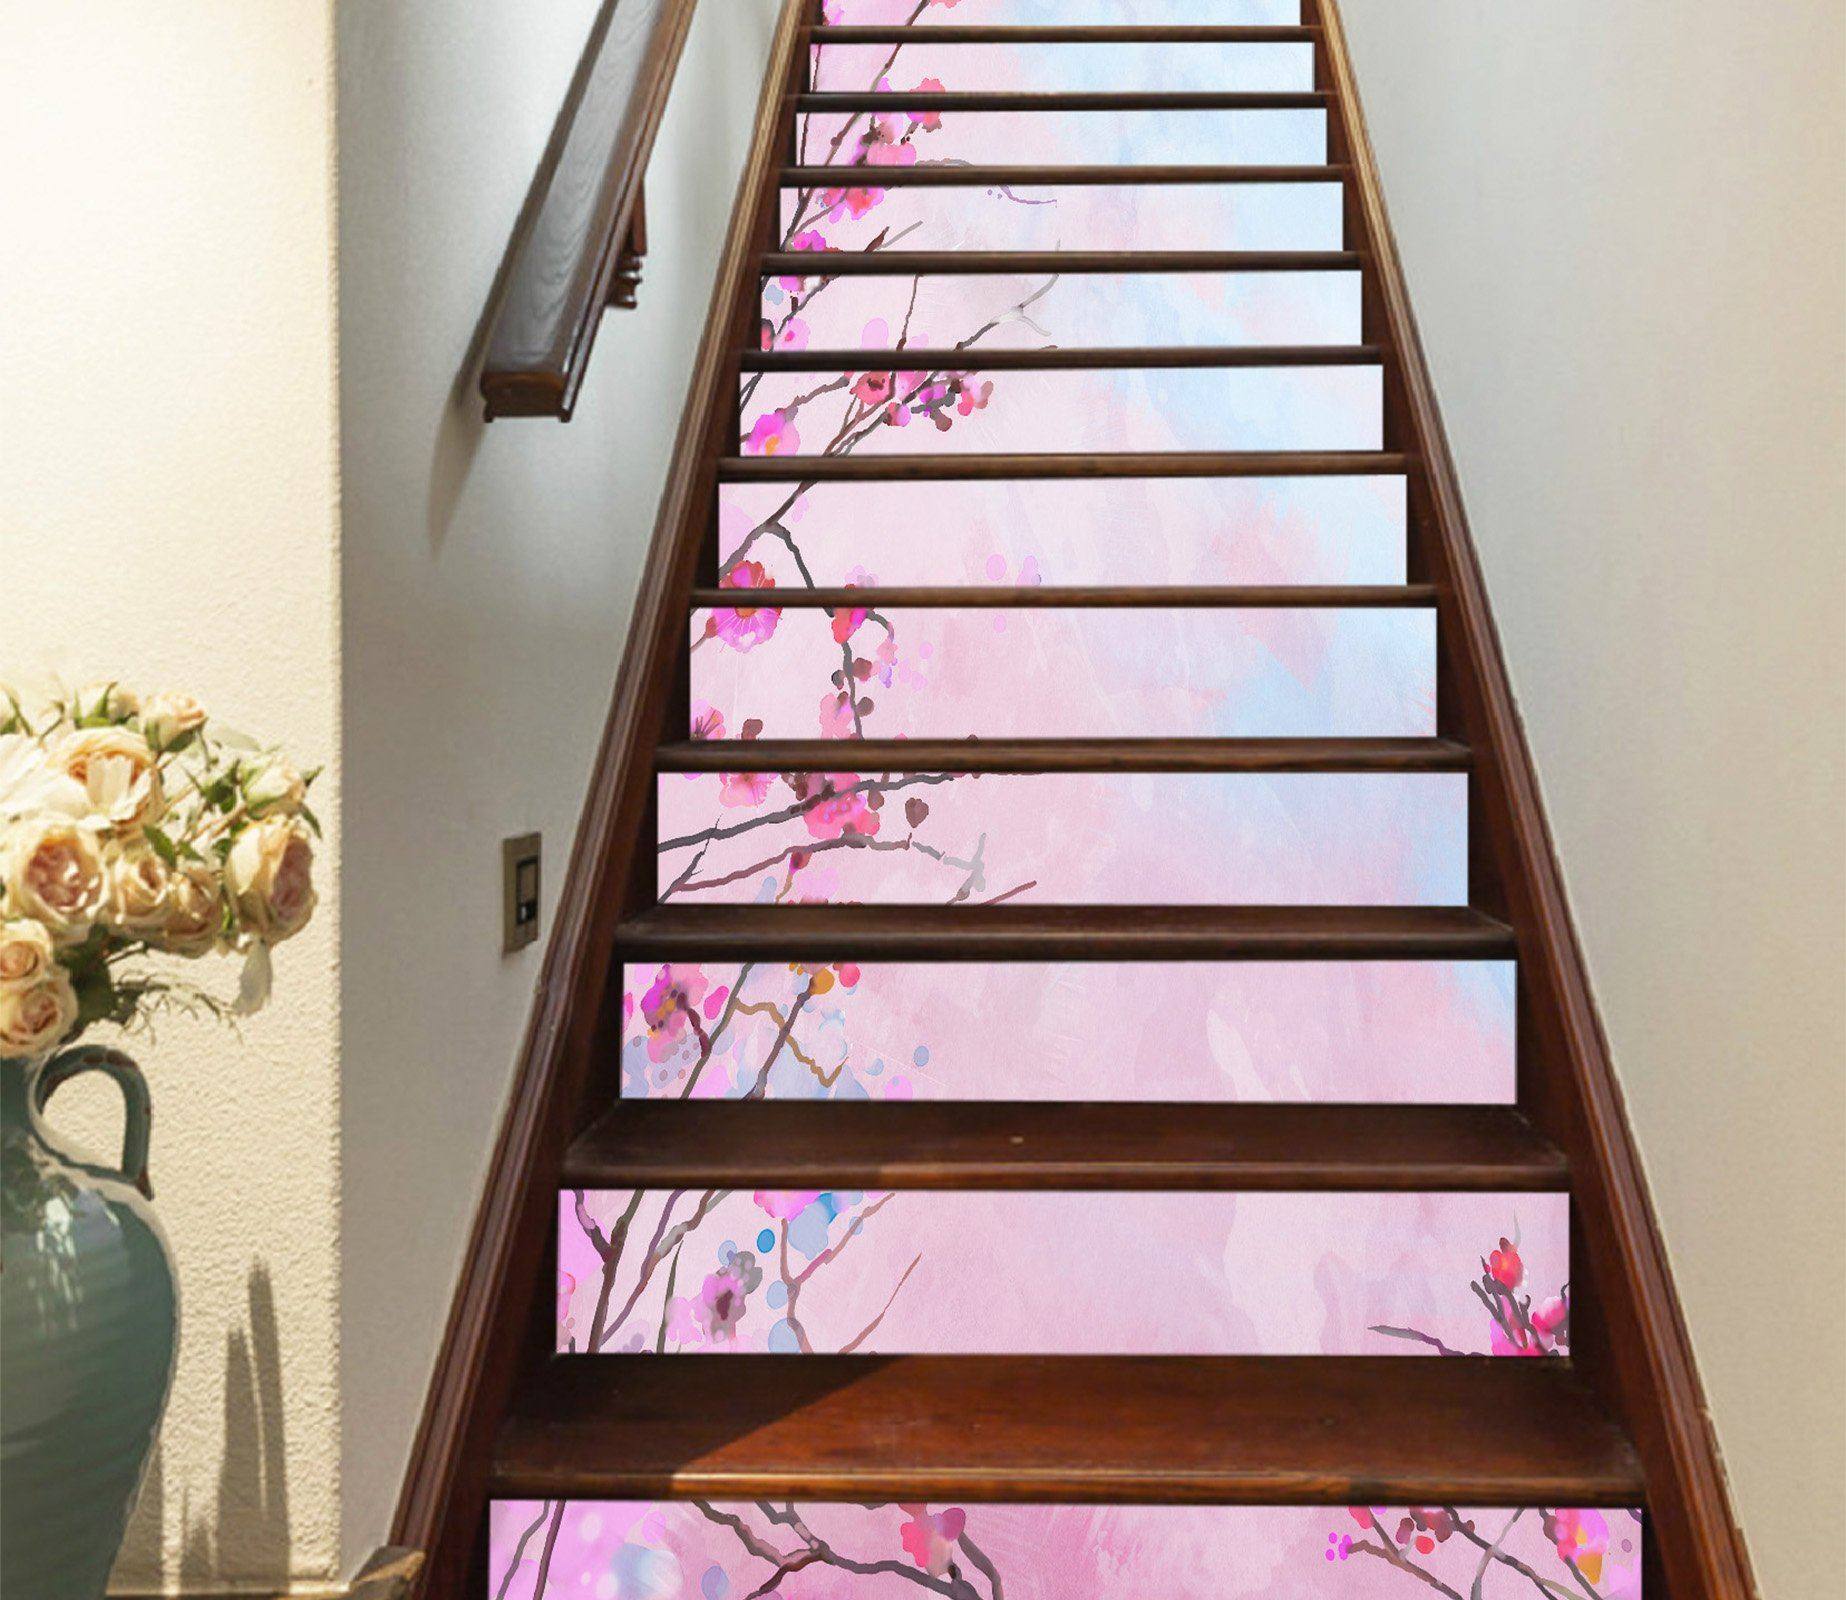 3D Flowers 528 Stair Risers Wallpaper AJ Wallpaper